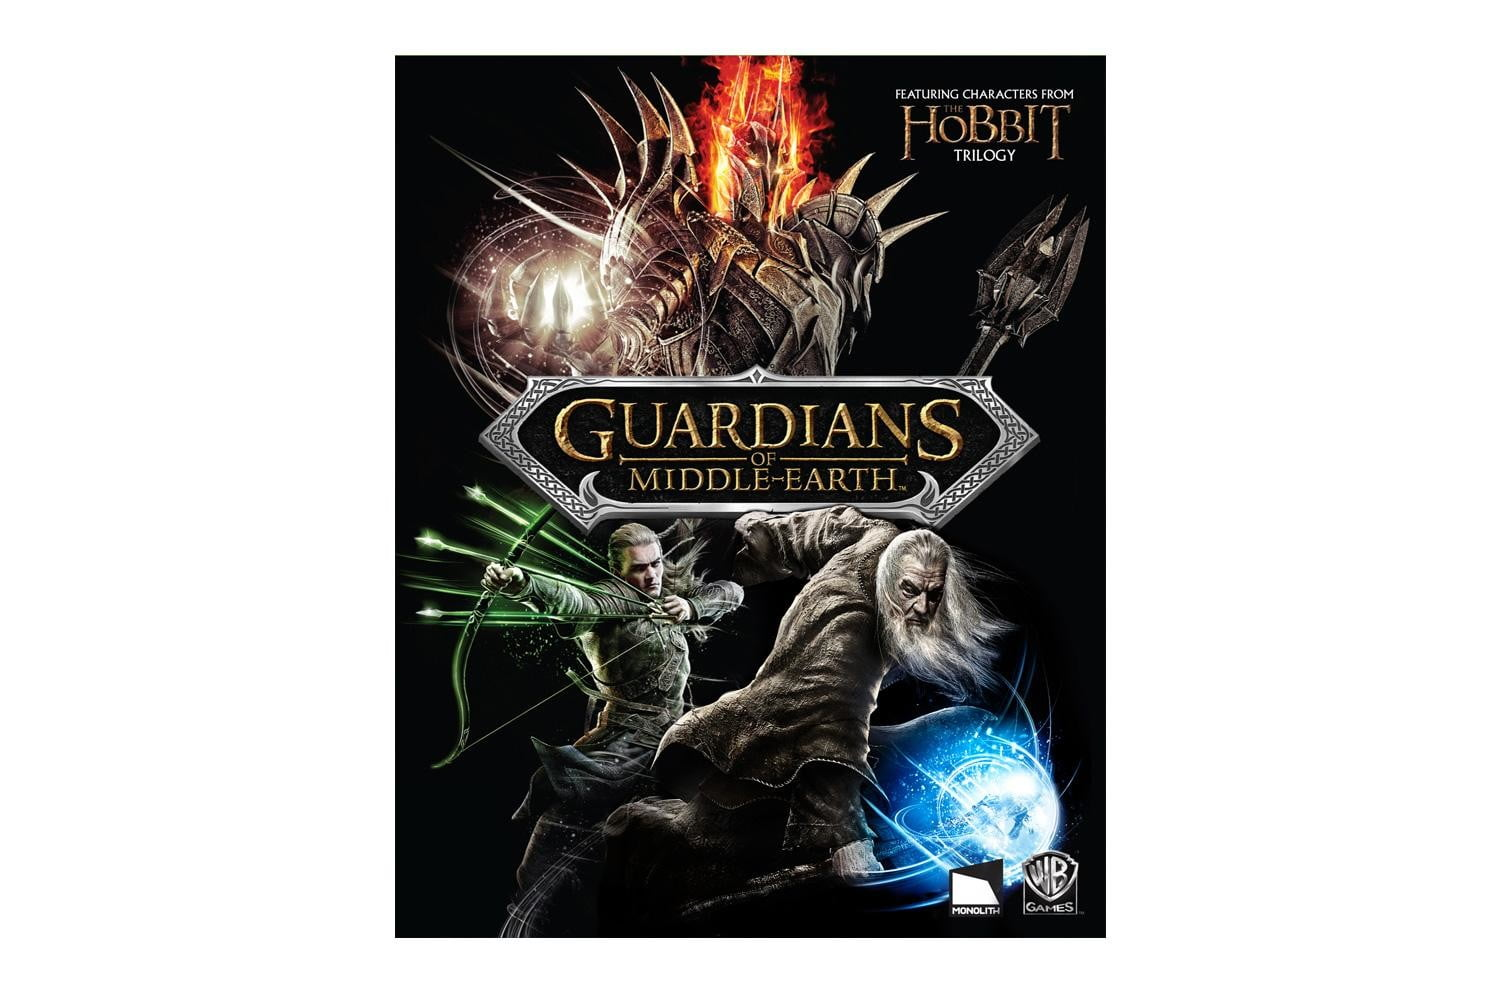 Guardians-of-Middle-Earth-cover-art